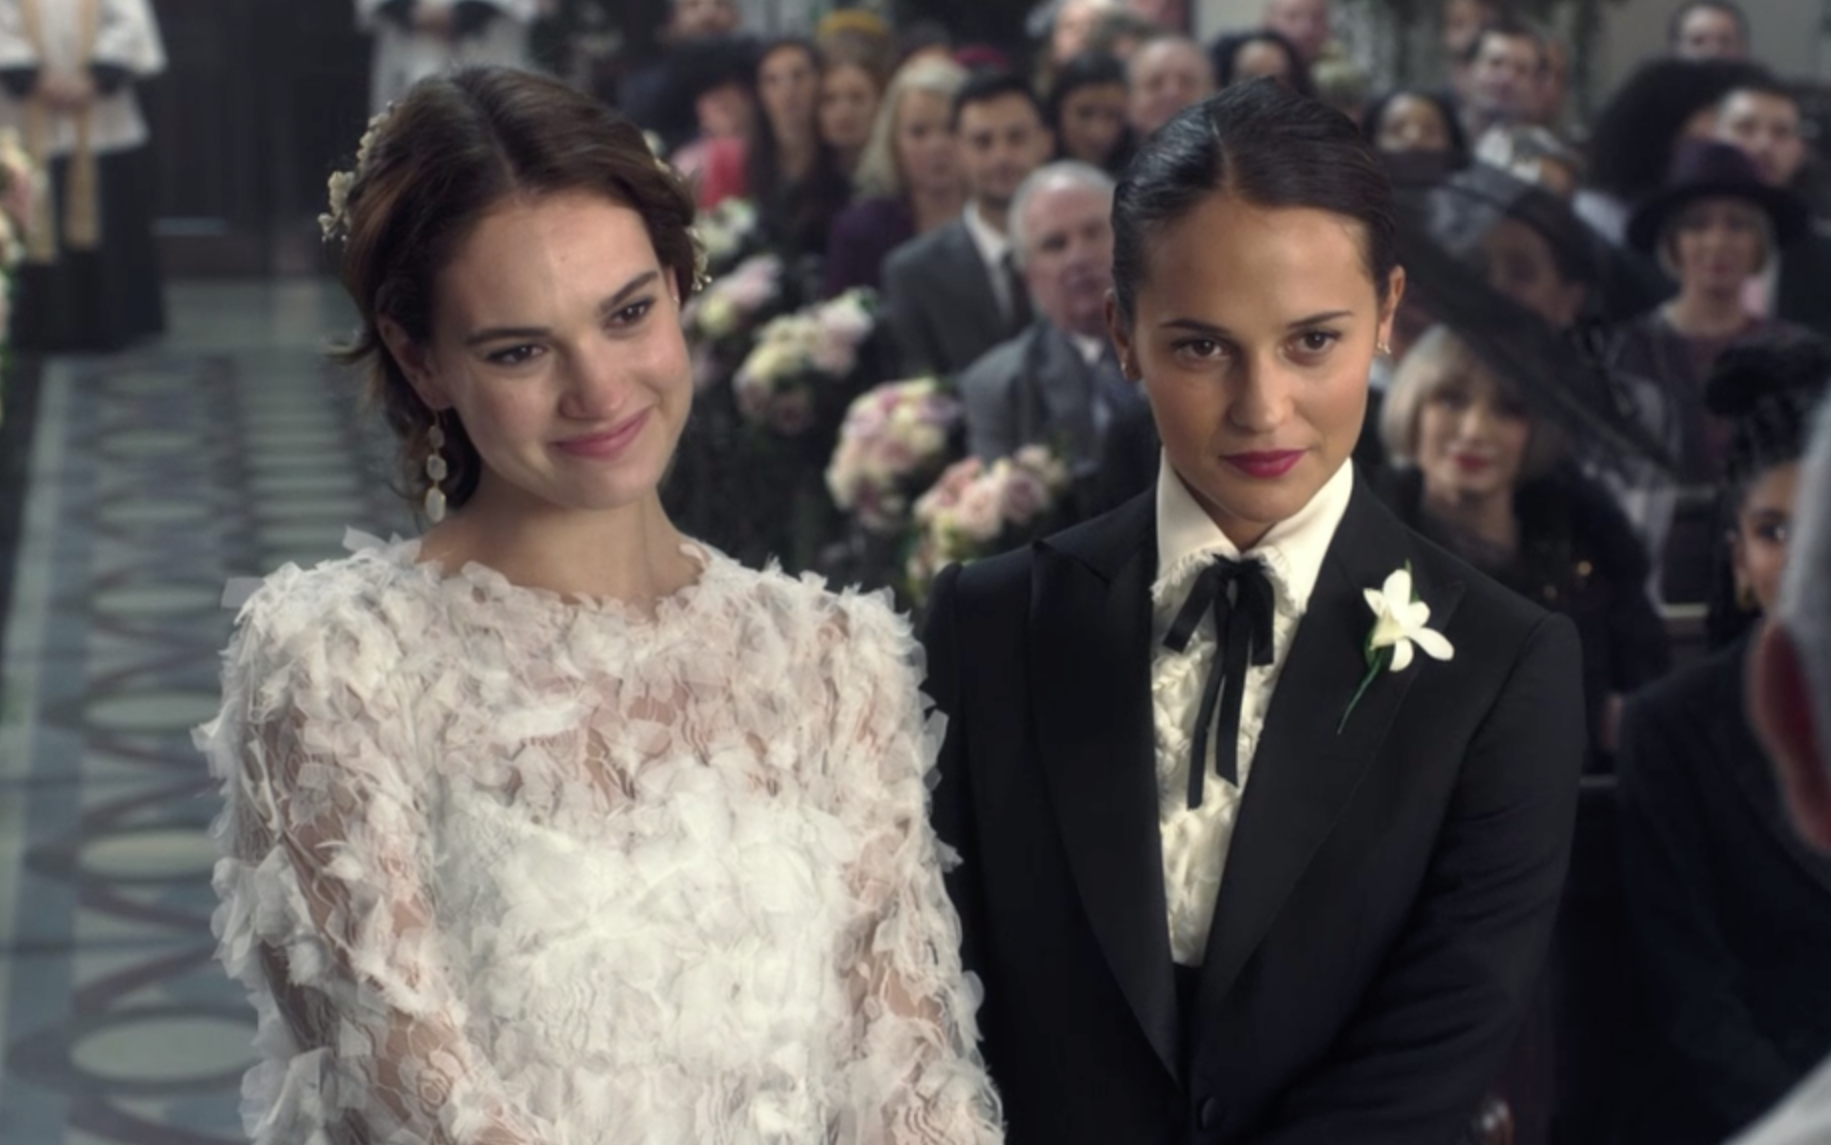 James married lily What did